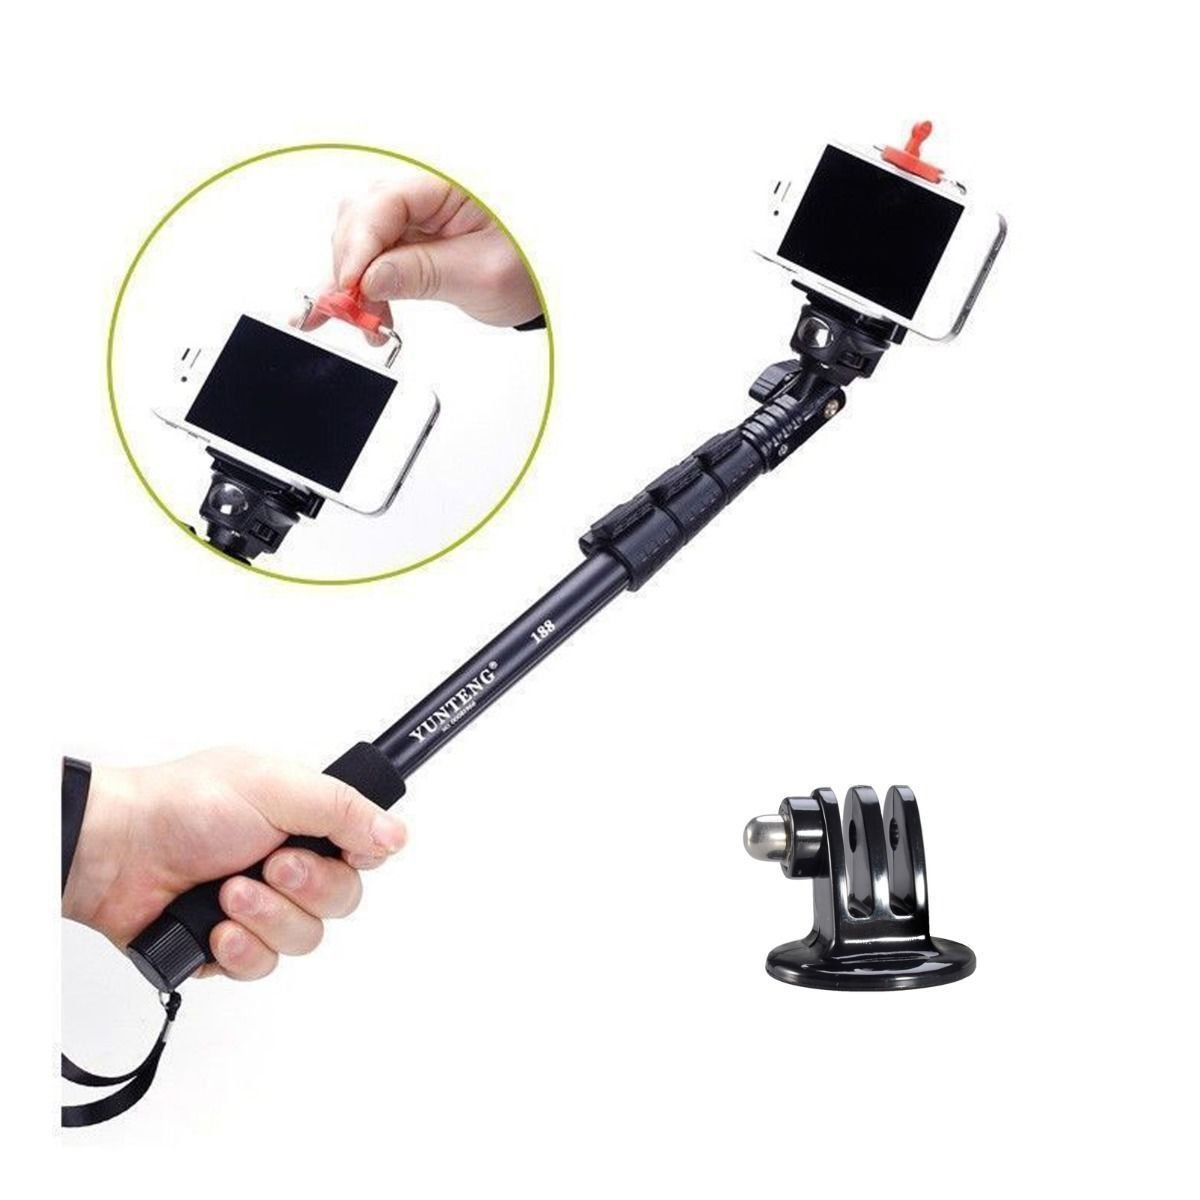 Extended Selfie Monopod Handheld Stick Pole for iPhone 6 5s Gopro Hero 4 3 3 2